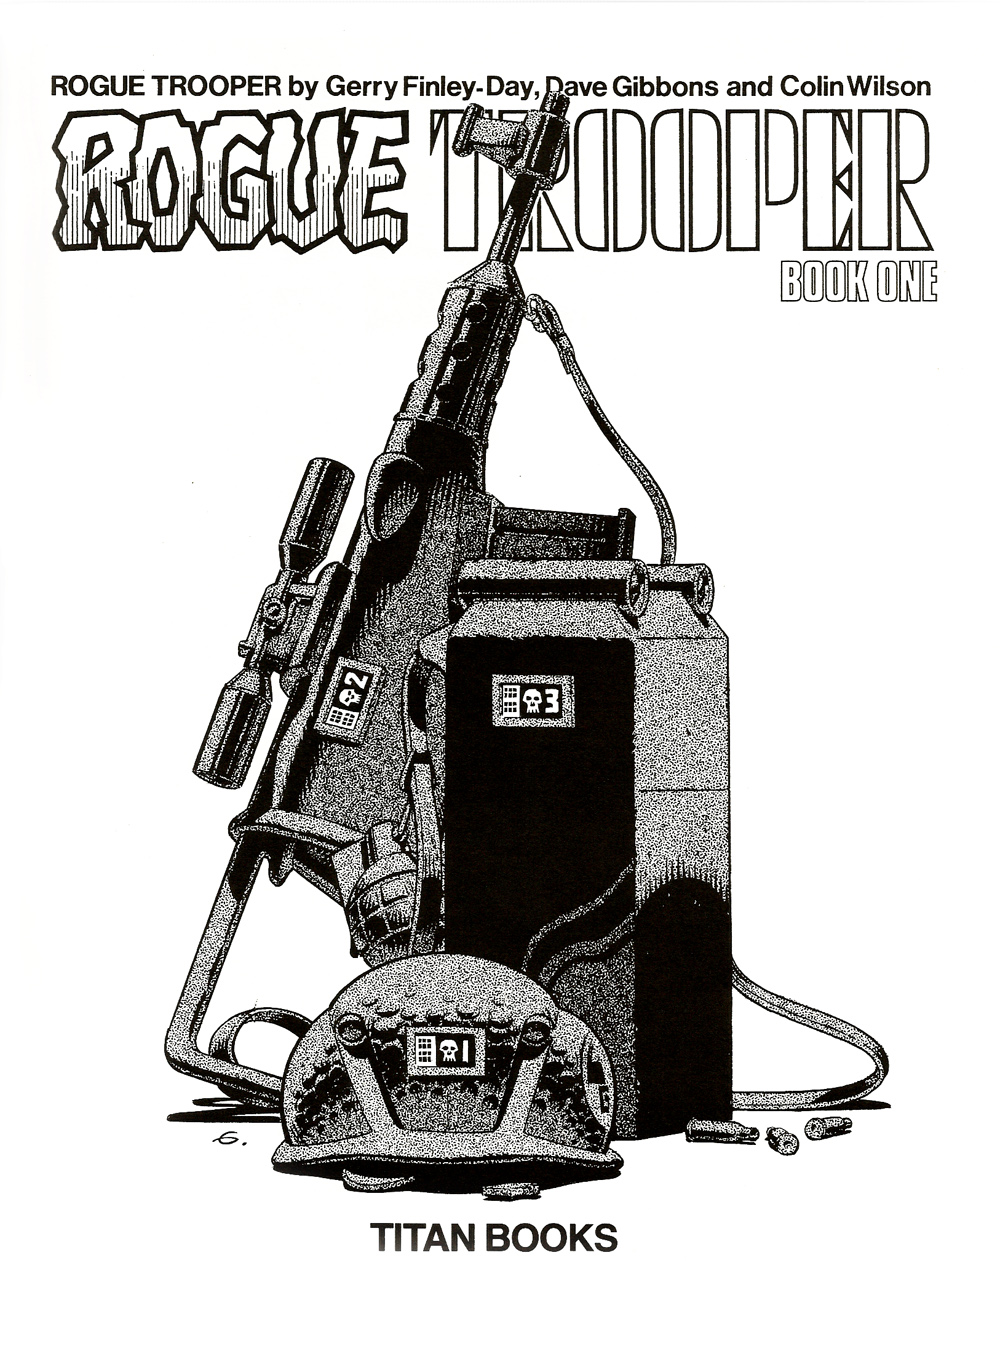 rogue-tropper-book-1-title-page.jpg